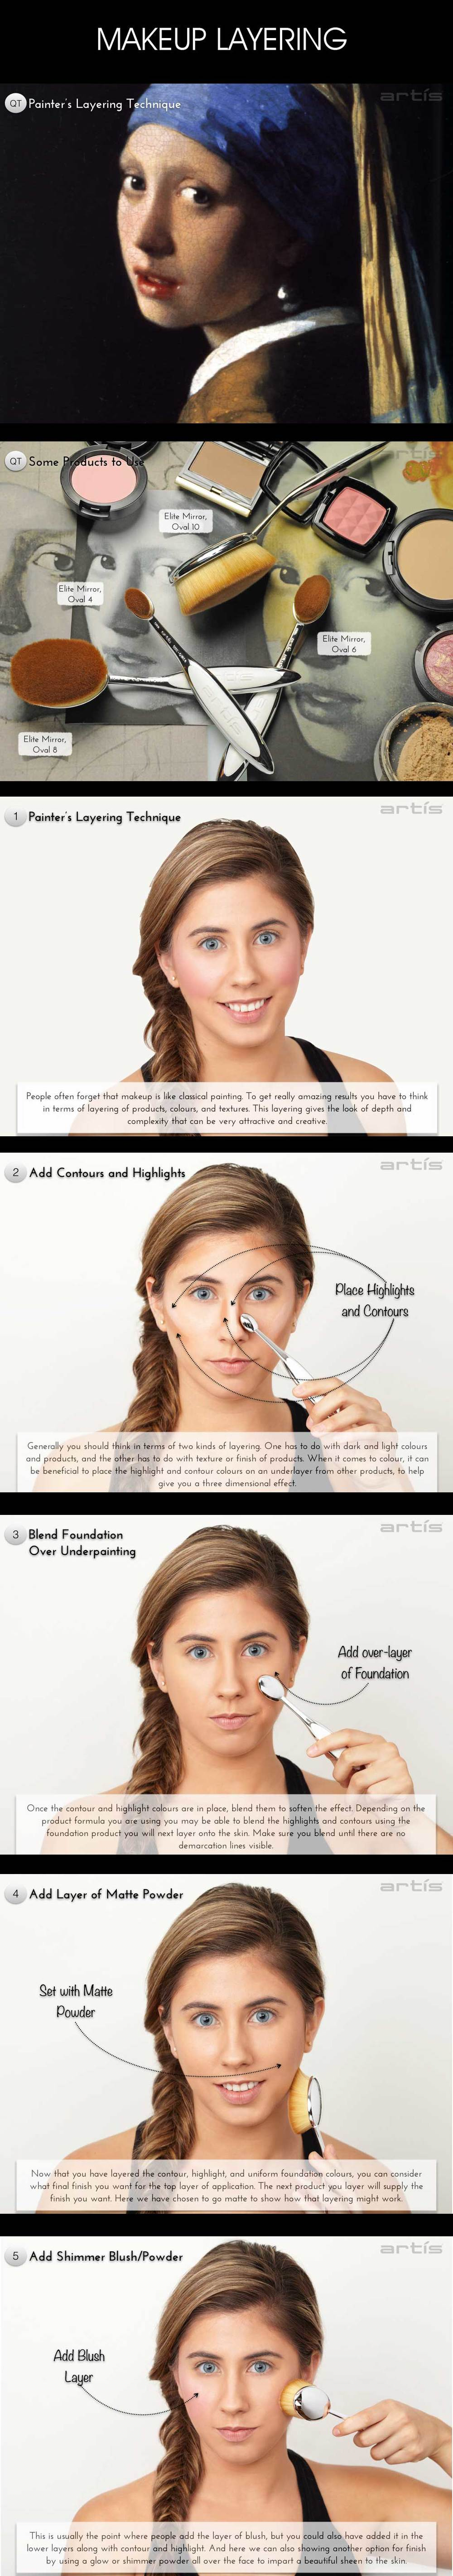 makeup-layering-technique-full-sequence.jpg